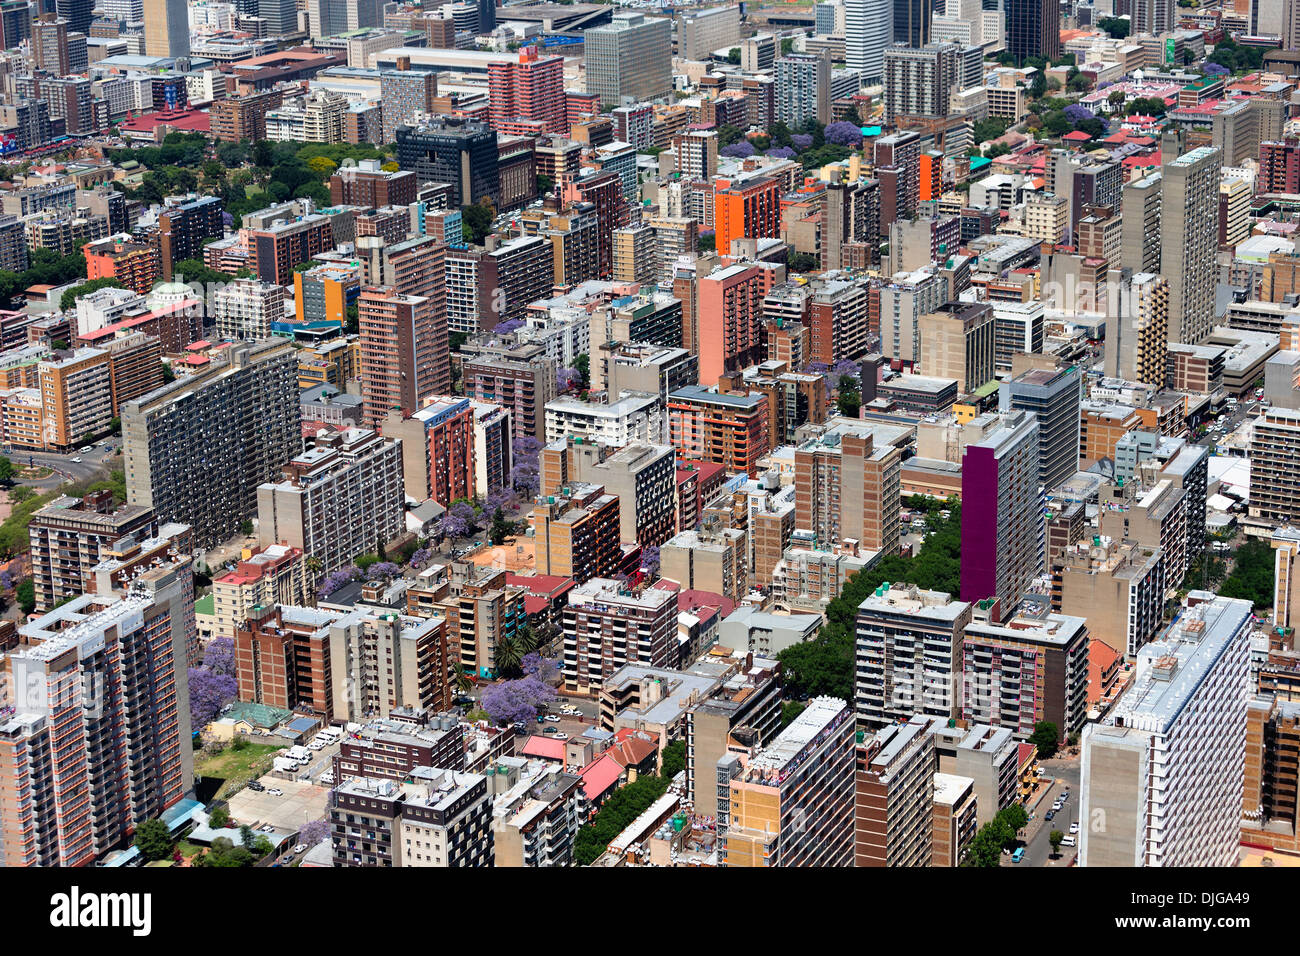 Aerial view of high-rise office buildings.Johannesburg.South Africa - Stock Image